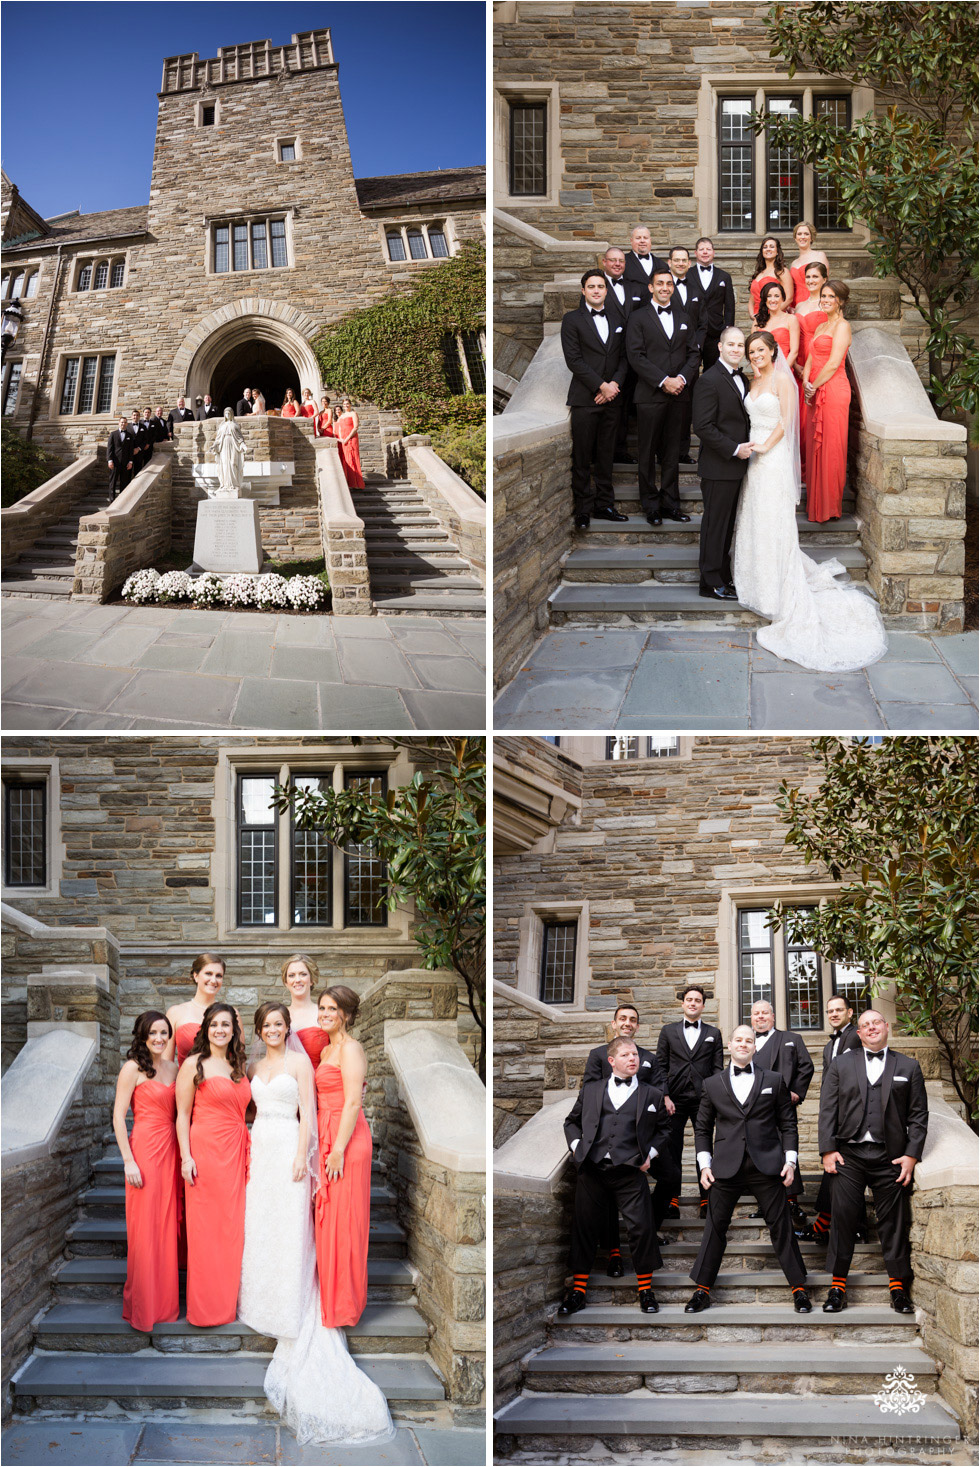 Bridal party at Saint Josephs University campus in Philadelphia, Pennsylvania - Blog of Nina Hintringer Photography - Wedding Photography, Wedding Reportage and Destination Weddings